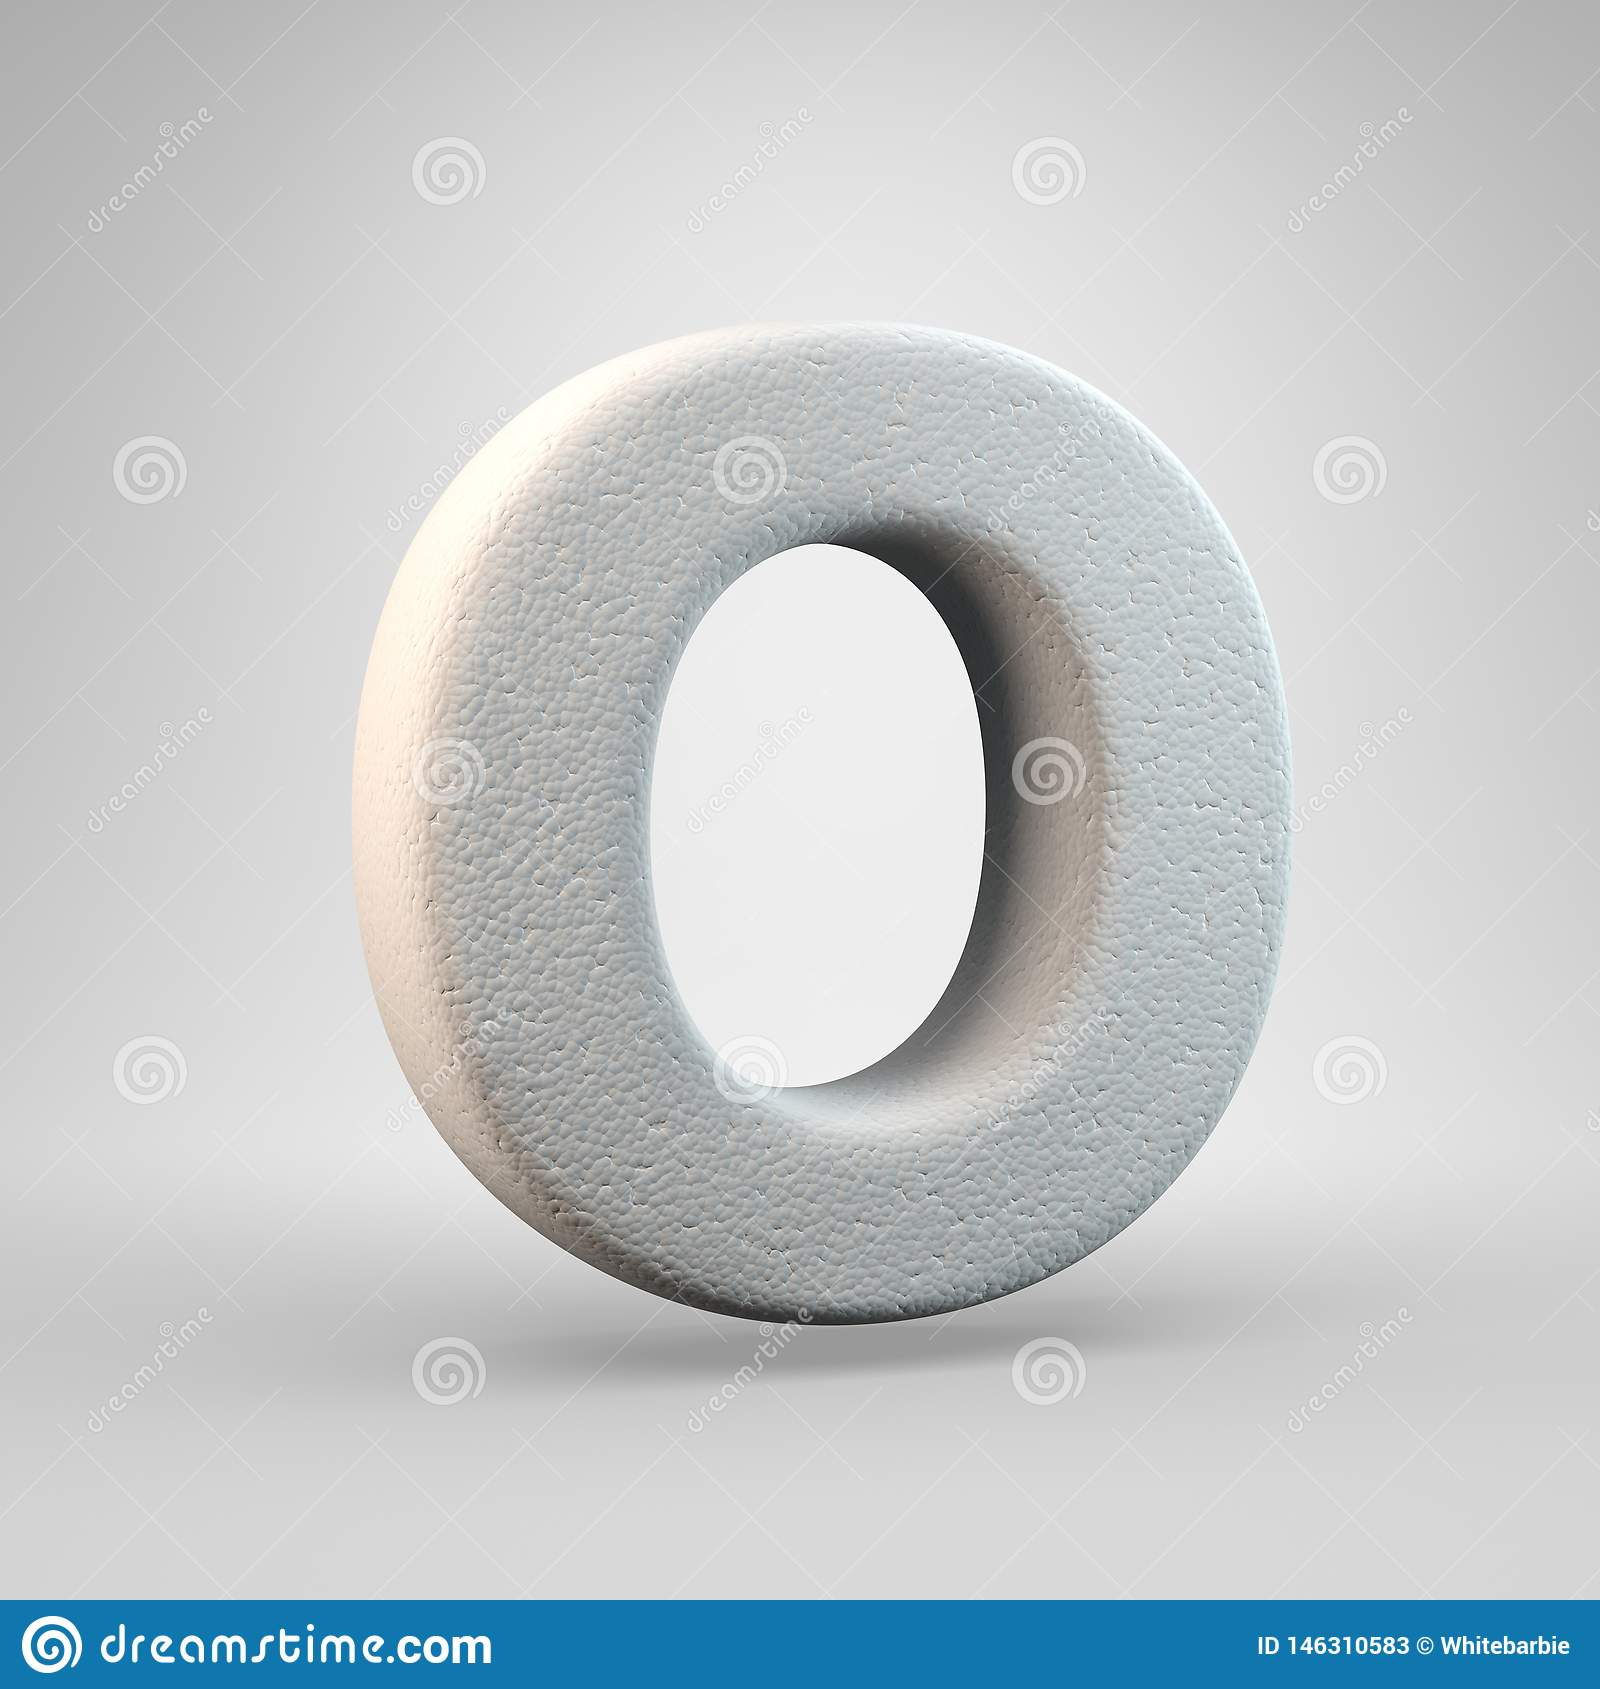 Volumetric construction foam uppercase letter O isolated on white background